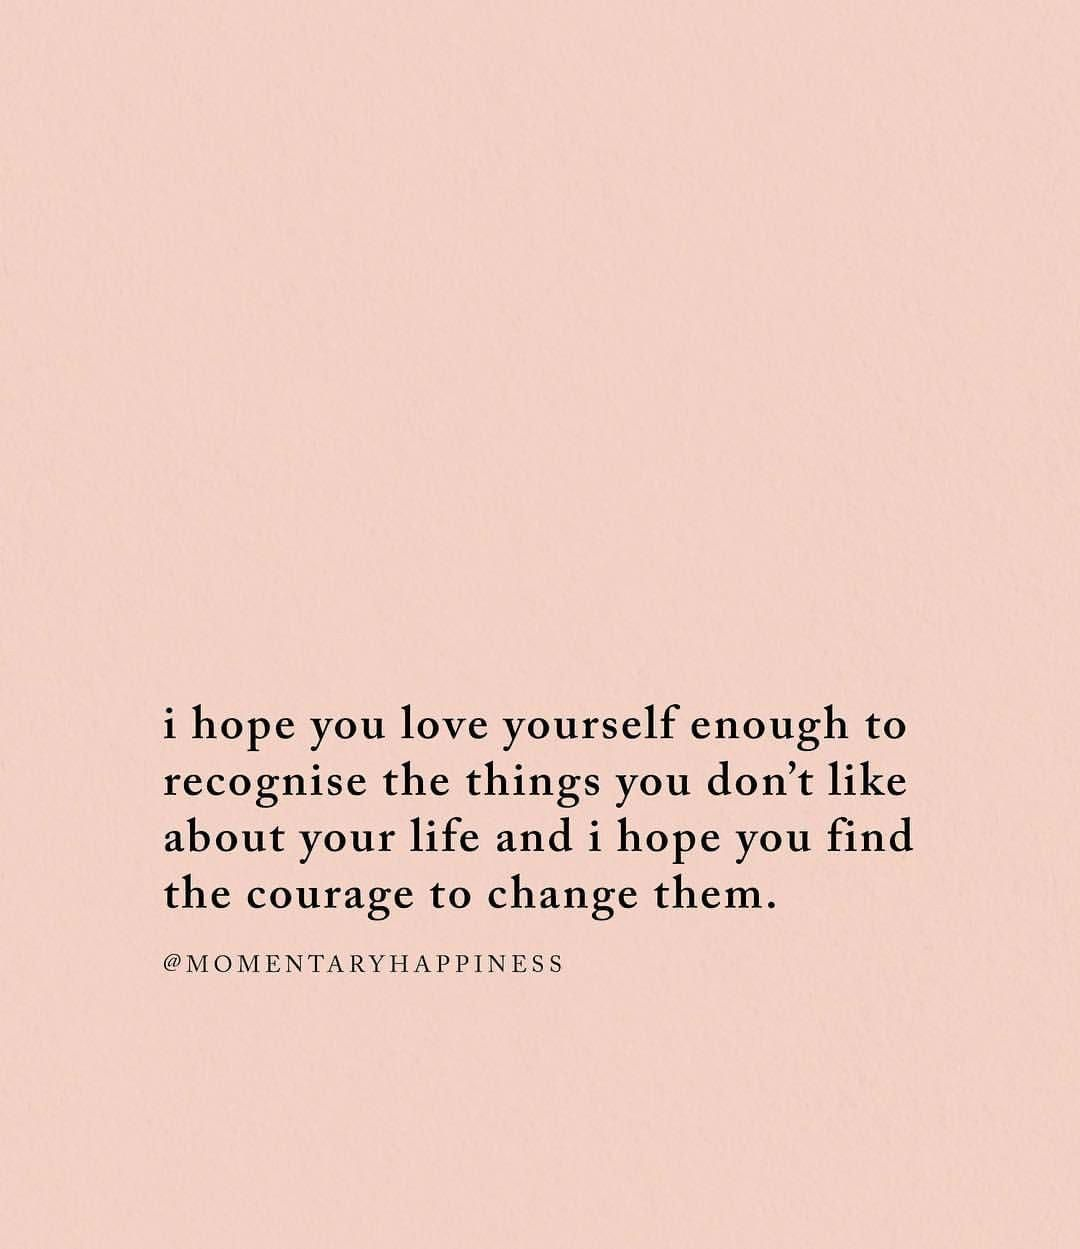 I Hope You Love Yourself Enough To Recognise The Things You Don T Like About Your Life And I Hope You Find The Courage To Change Words Quotes Life Quotes Words